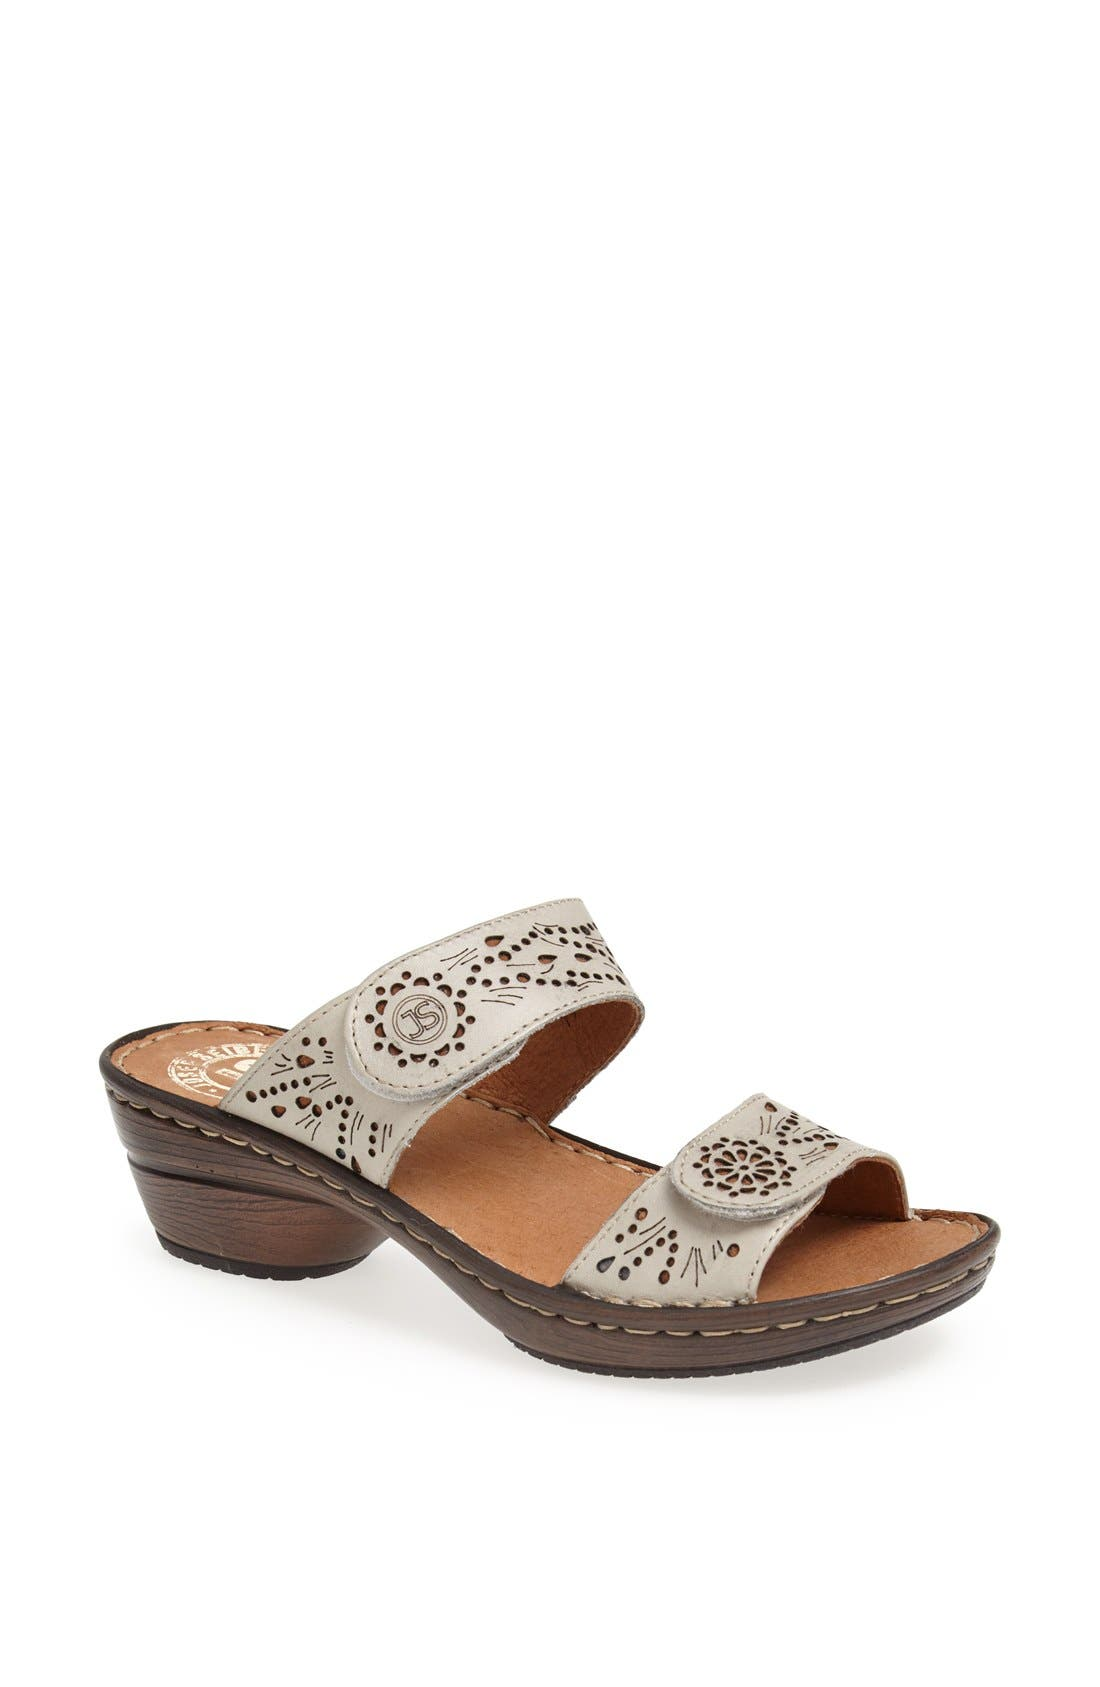 Alternate Image 1 Selected - Josef Seibel 'Jennifer' Sandal